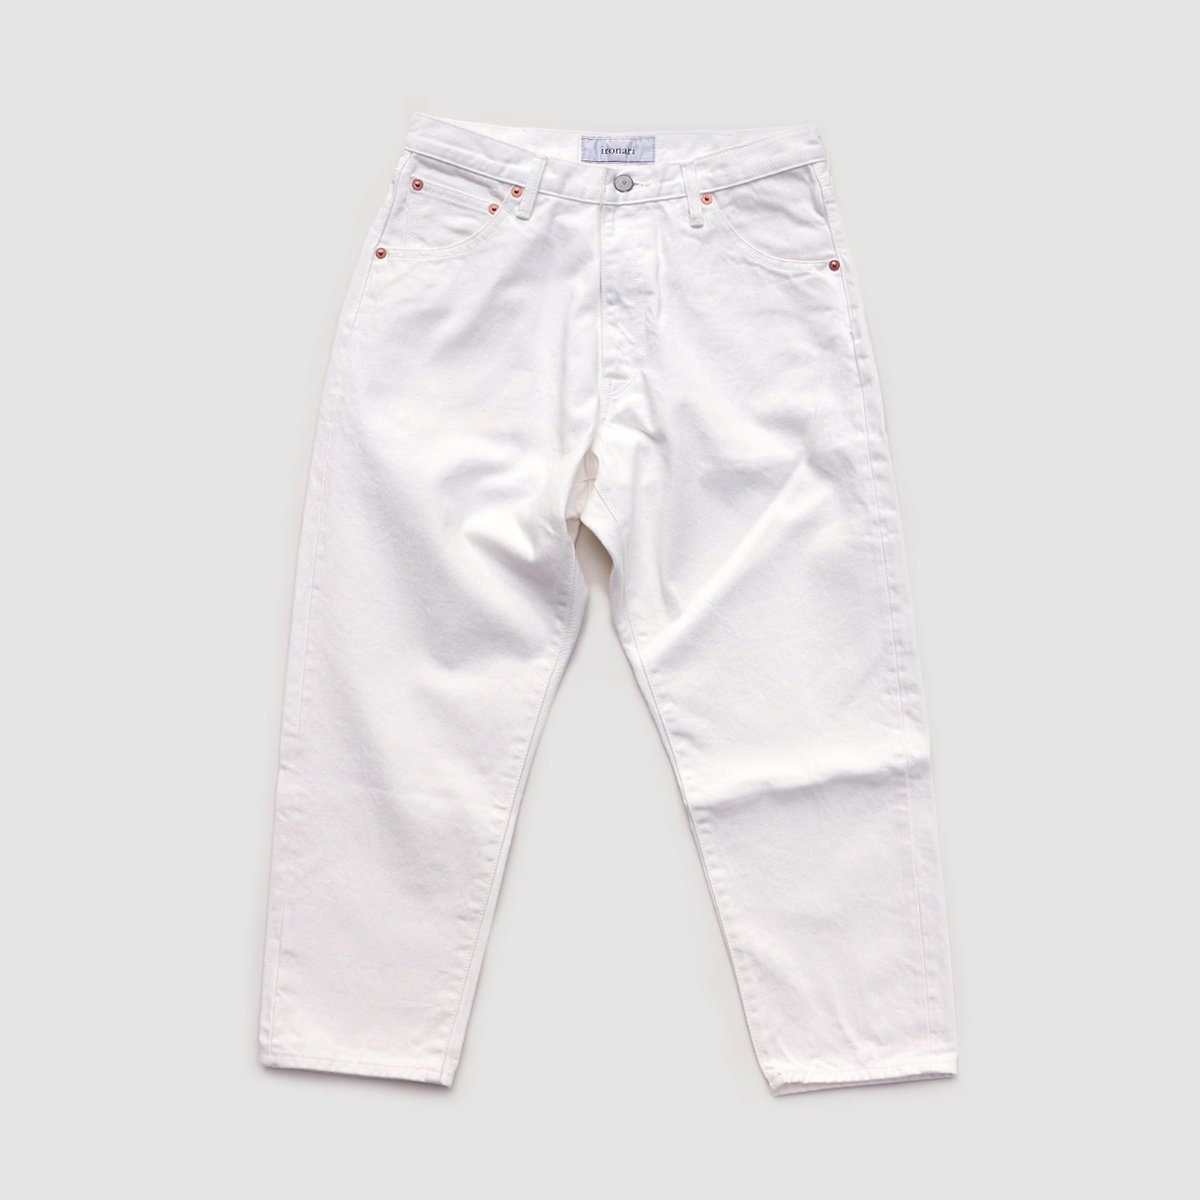 ALPHA DENIM ririzip ver. 詳細画像2